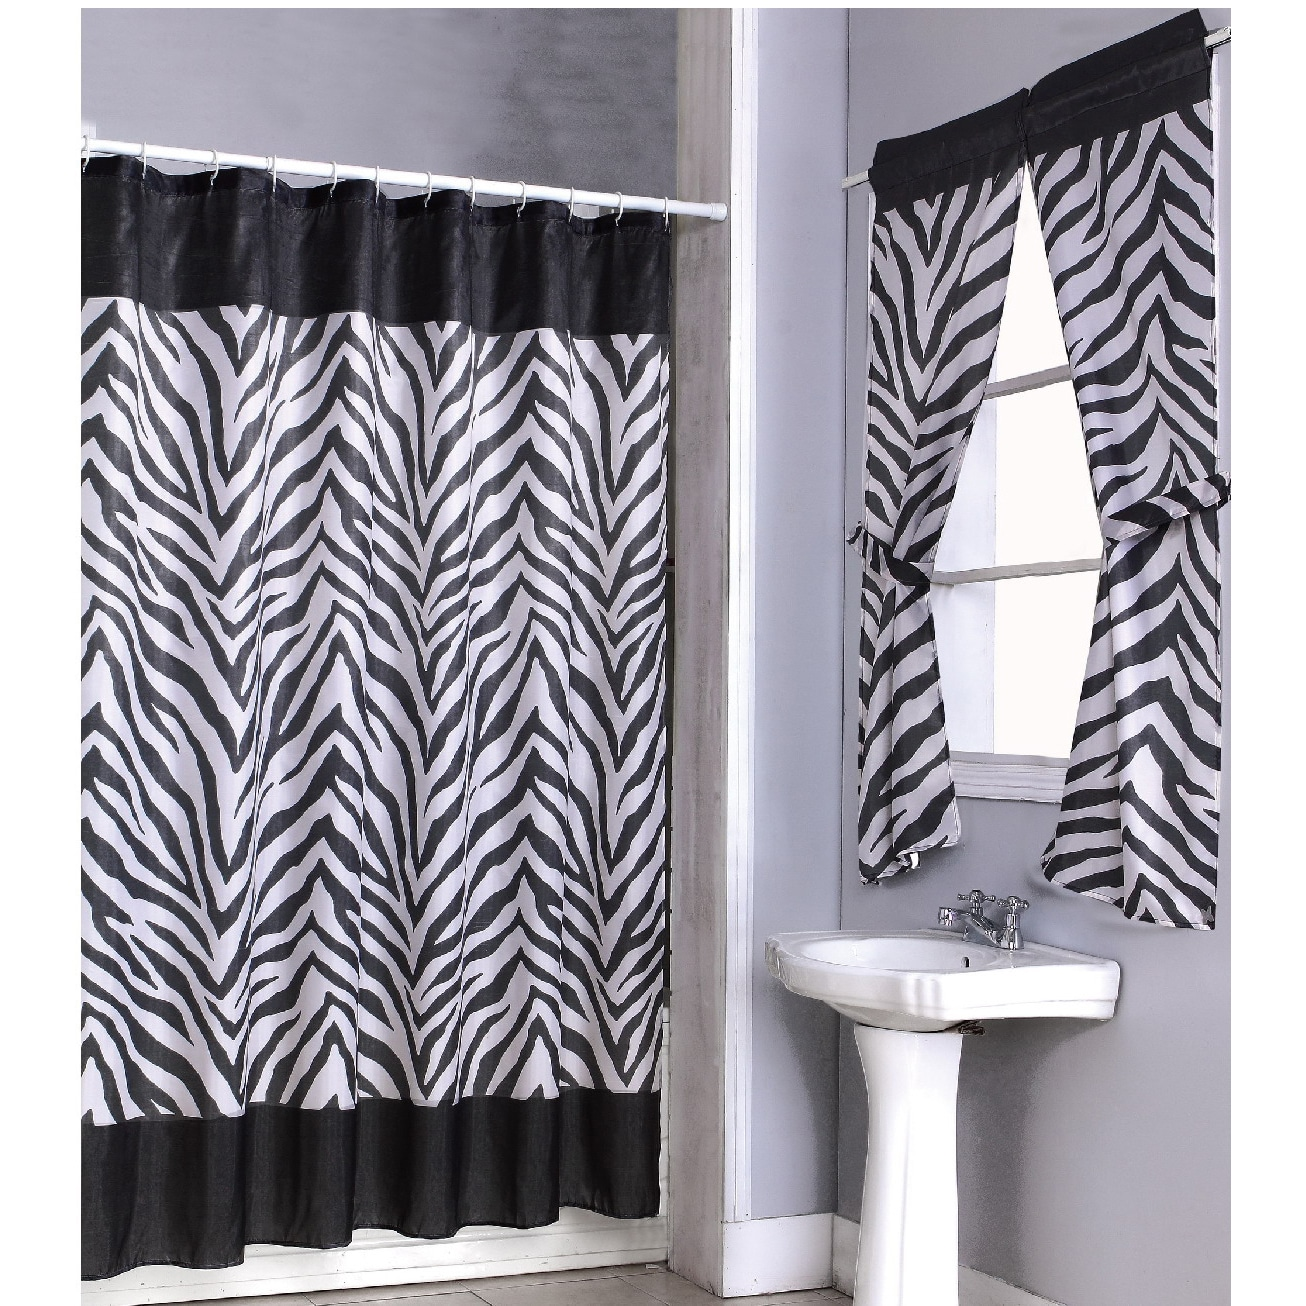 Matching Bedroom And Bathroom Sets: Zebra Print Shower Curtain 14-piece Set And 4-piece Window